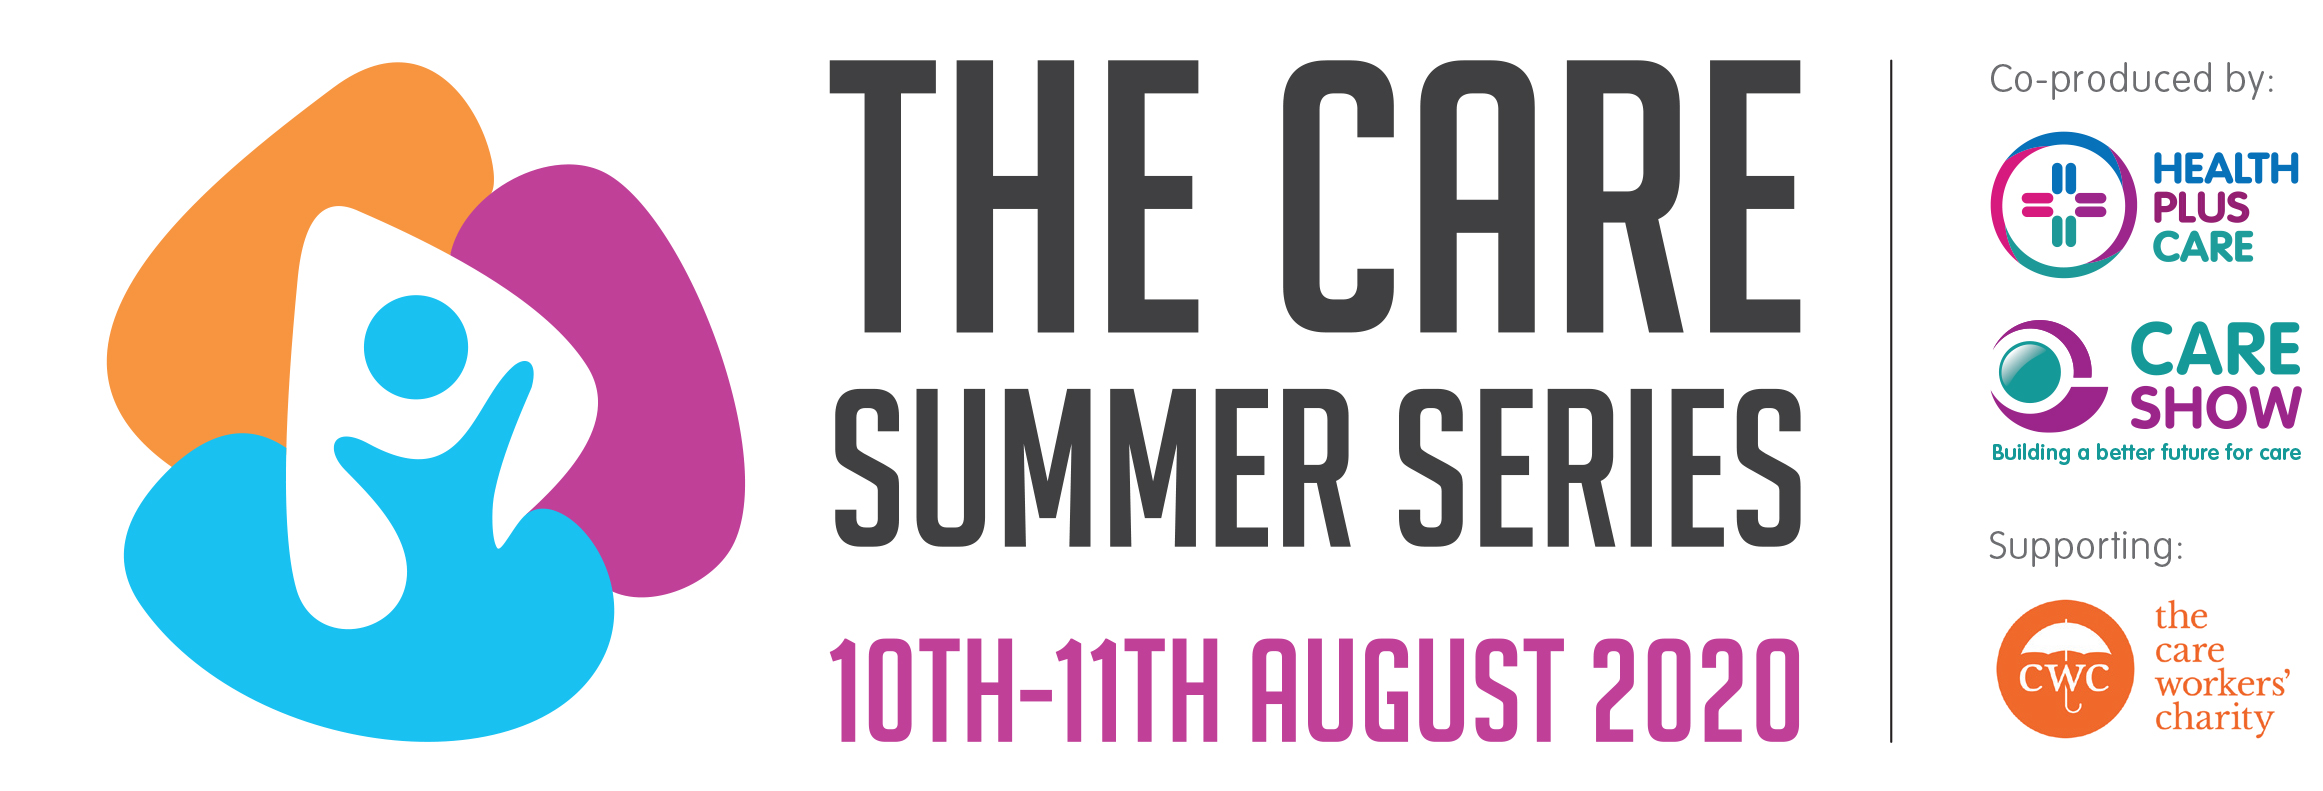 Care Show - Care week banners (LOGO) 200716v2